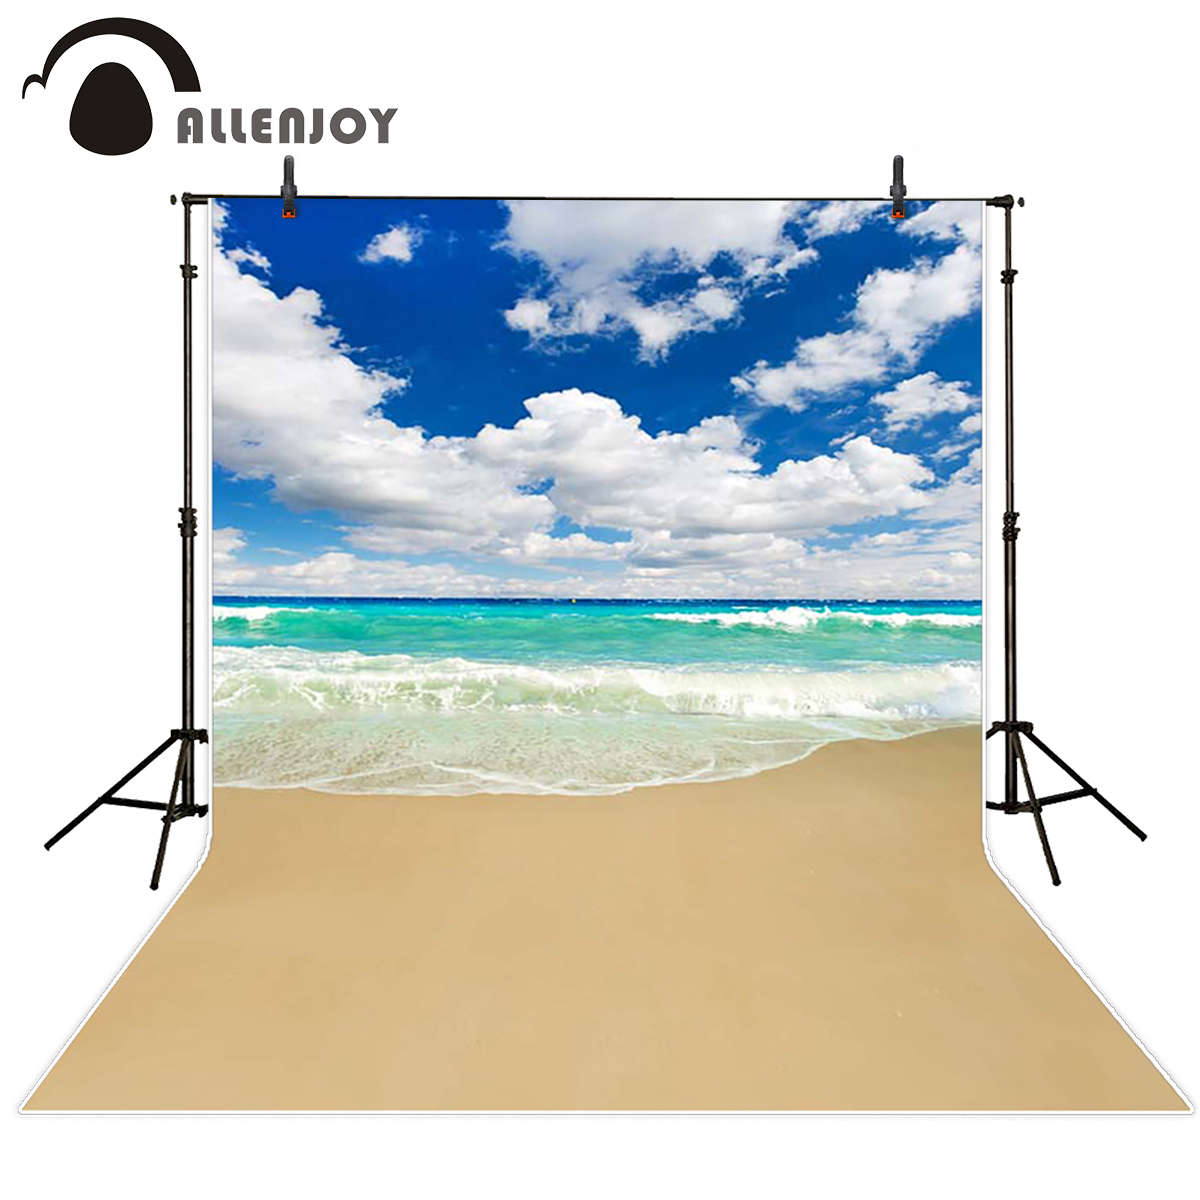 Allenjoy scenic Photo background Green seawater blue sky sand beach seaside photography backdrops for photographic studio kate backdrop for photography beach ocean wedding series background photo studio seaside scenic backdrops